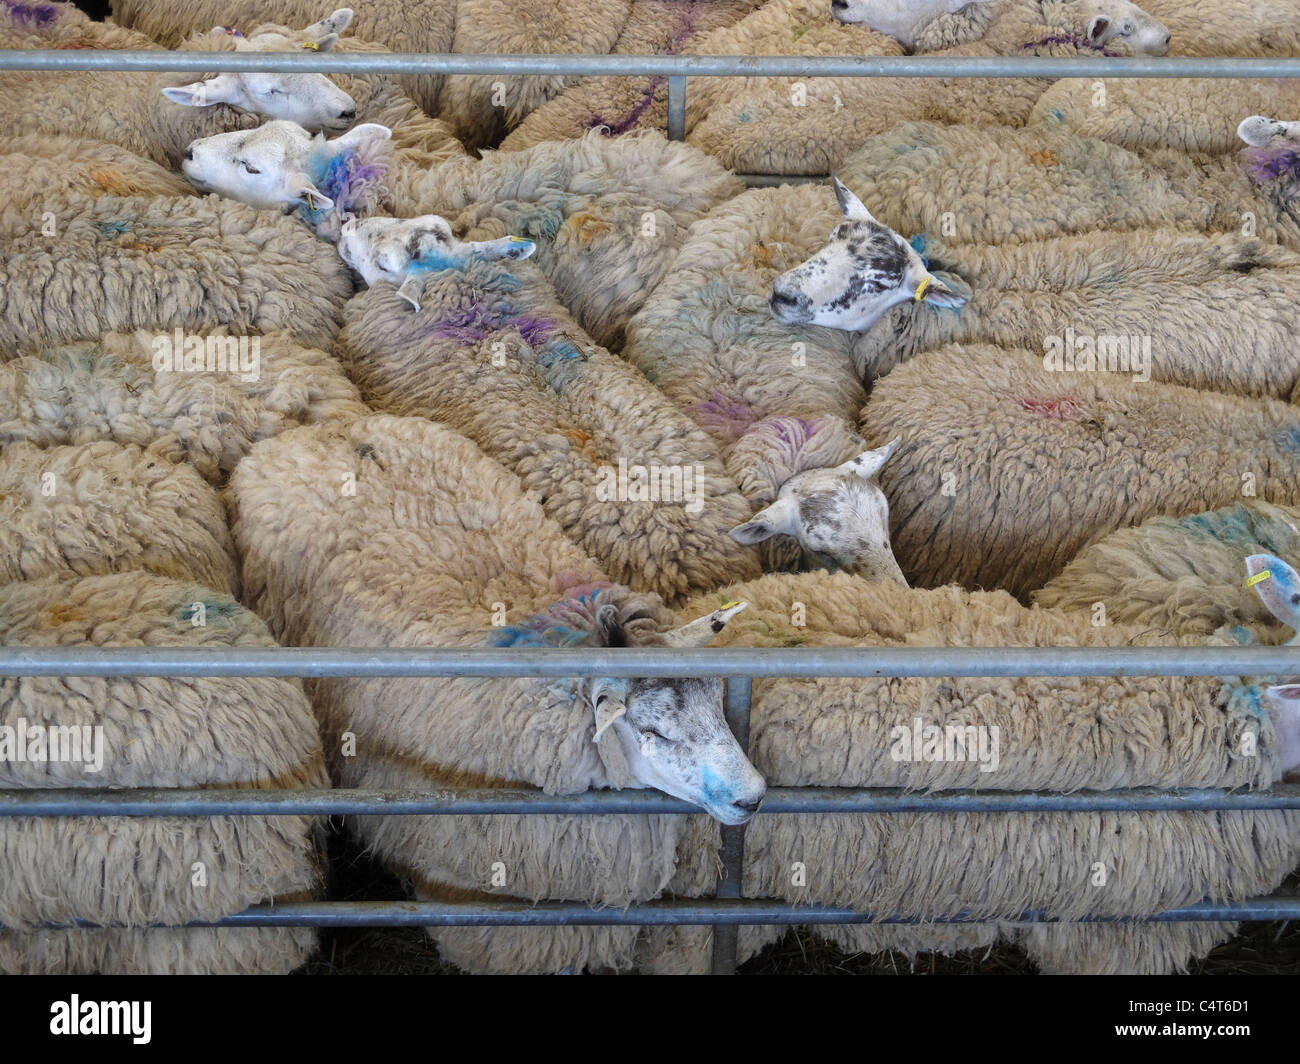 Sheep packed tightly into a pen at the weekly Melton Mowbray cattle market, Leicestershire, England. - Stock Image